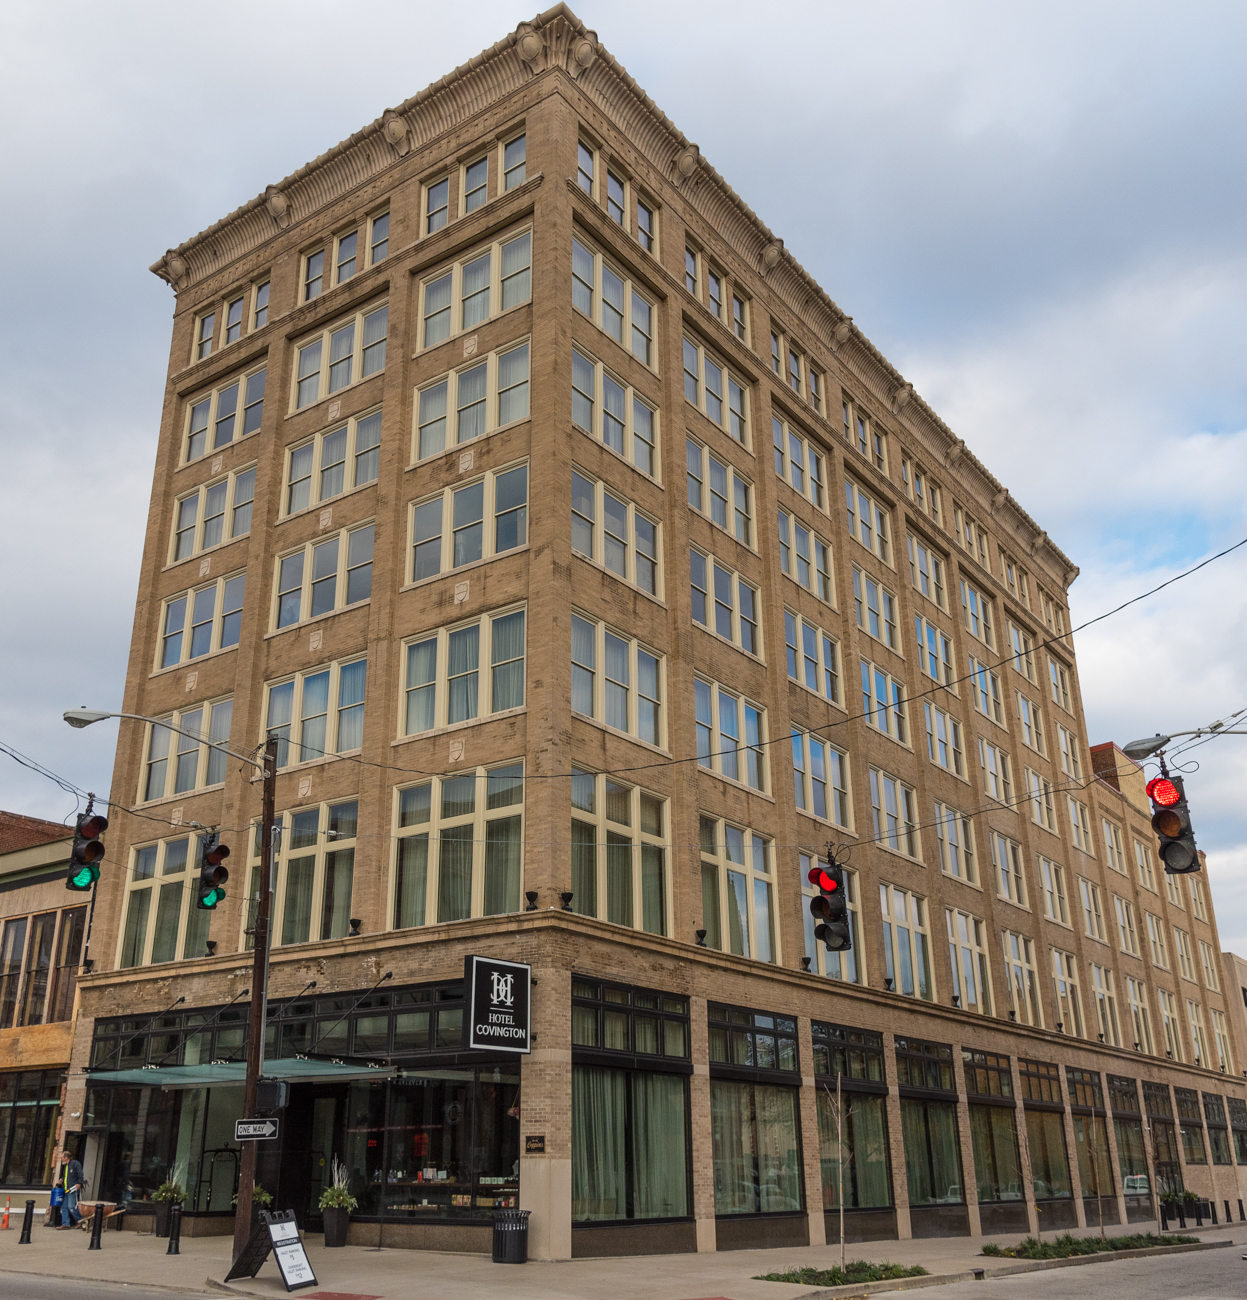 Hotel Covington Is A New Seven Story 114 Room Boutique Located In